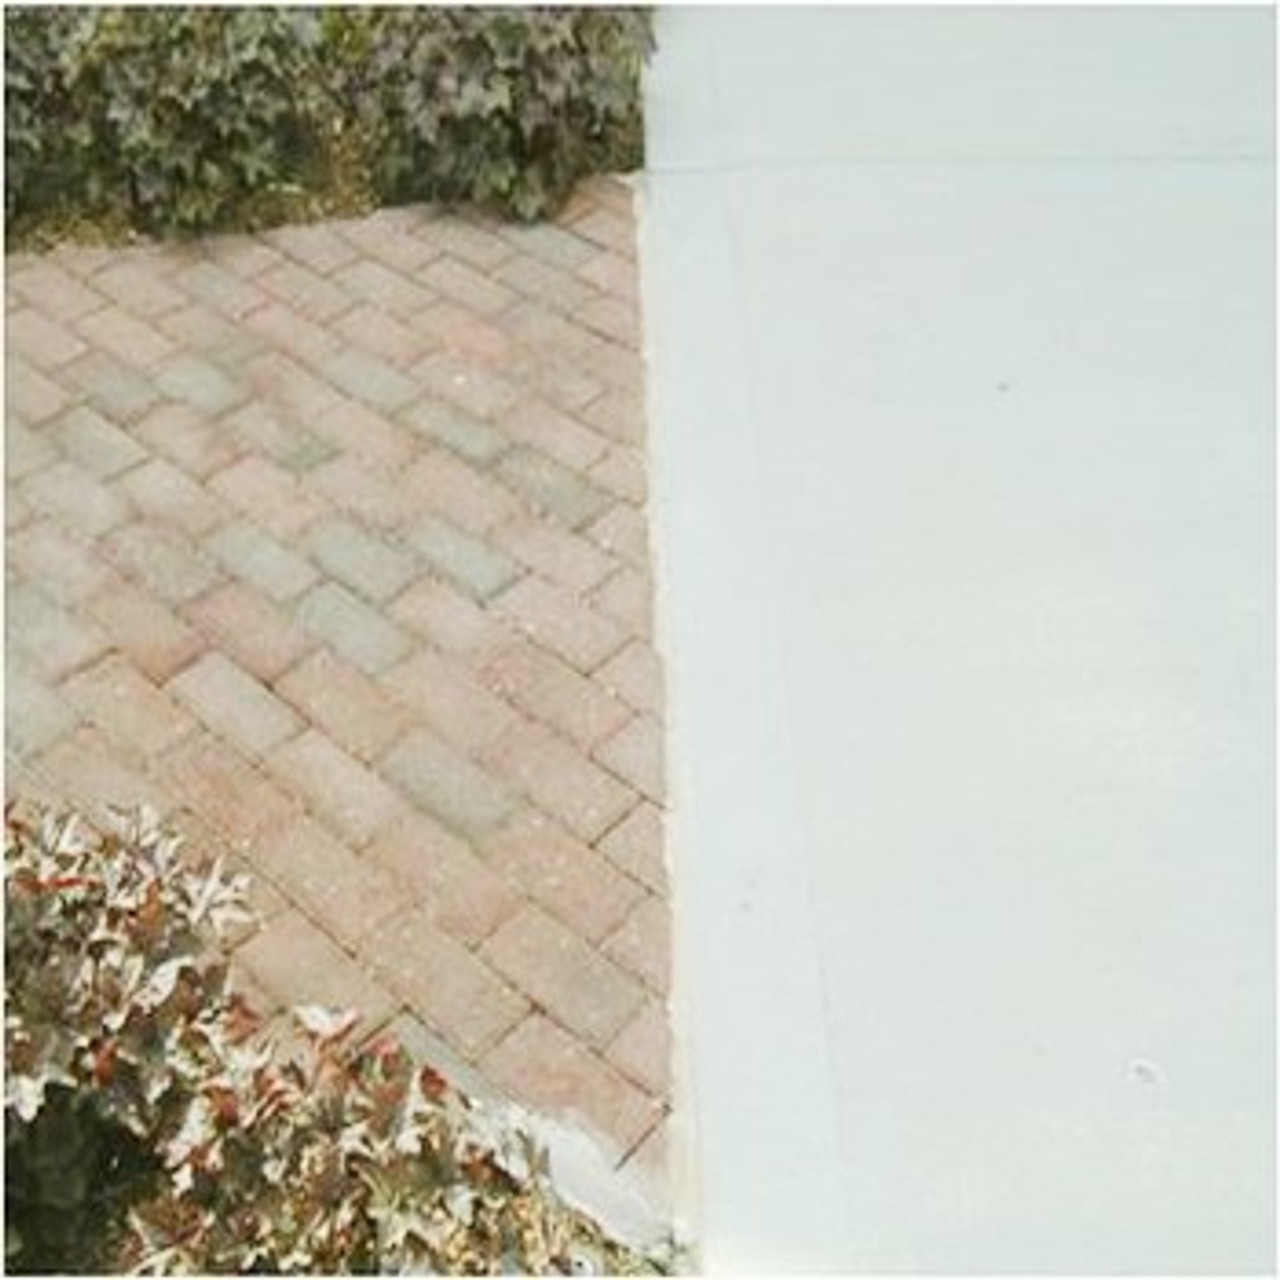 Clean and seal expansion joint between paver walkway and driveway